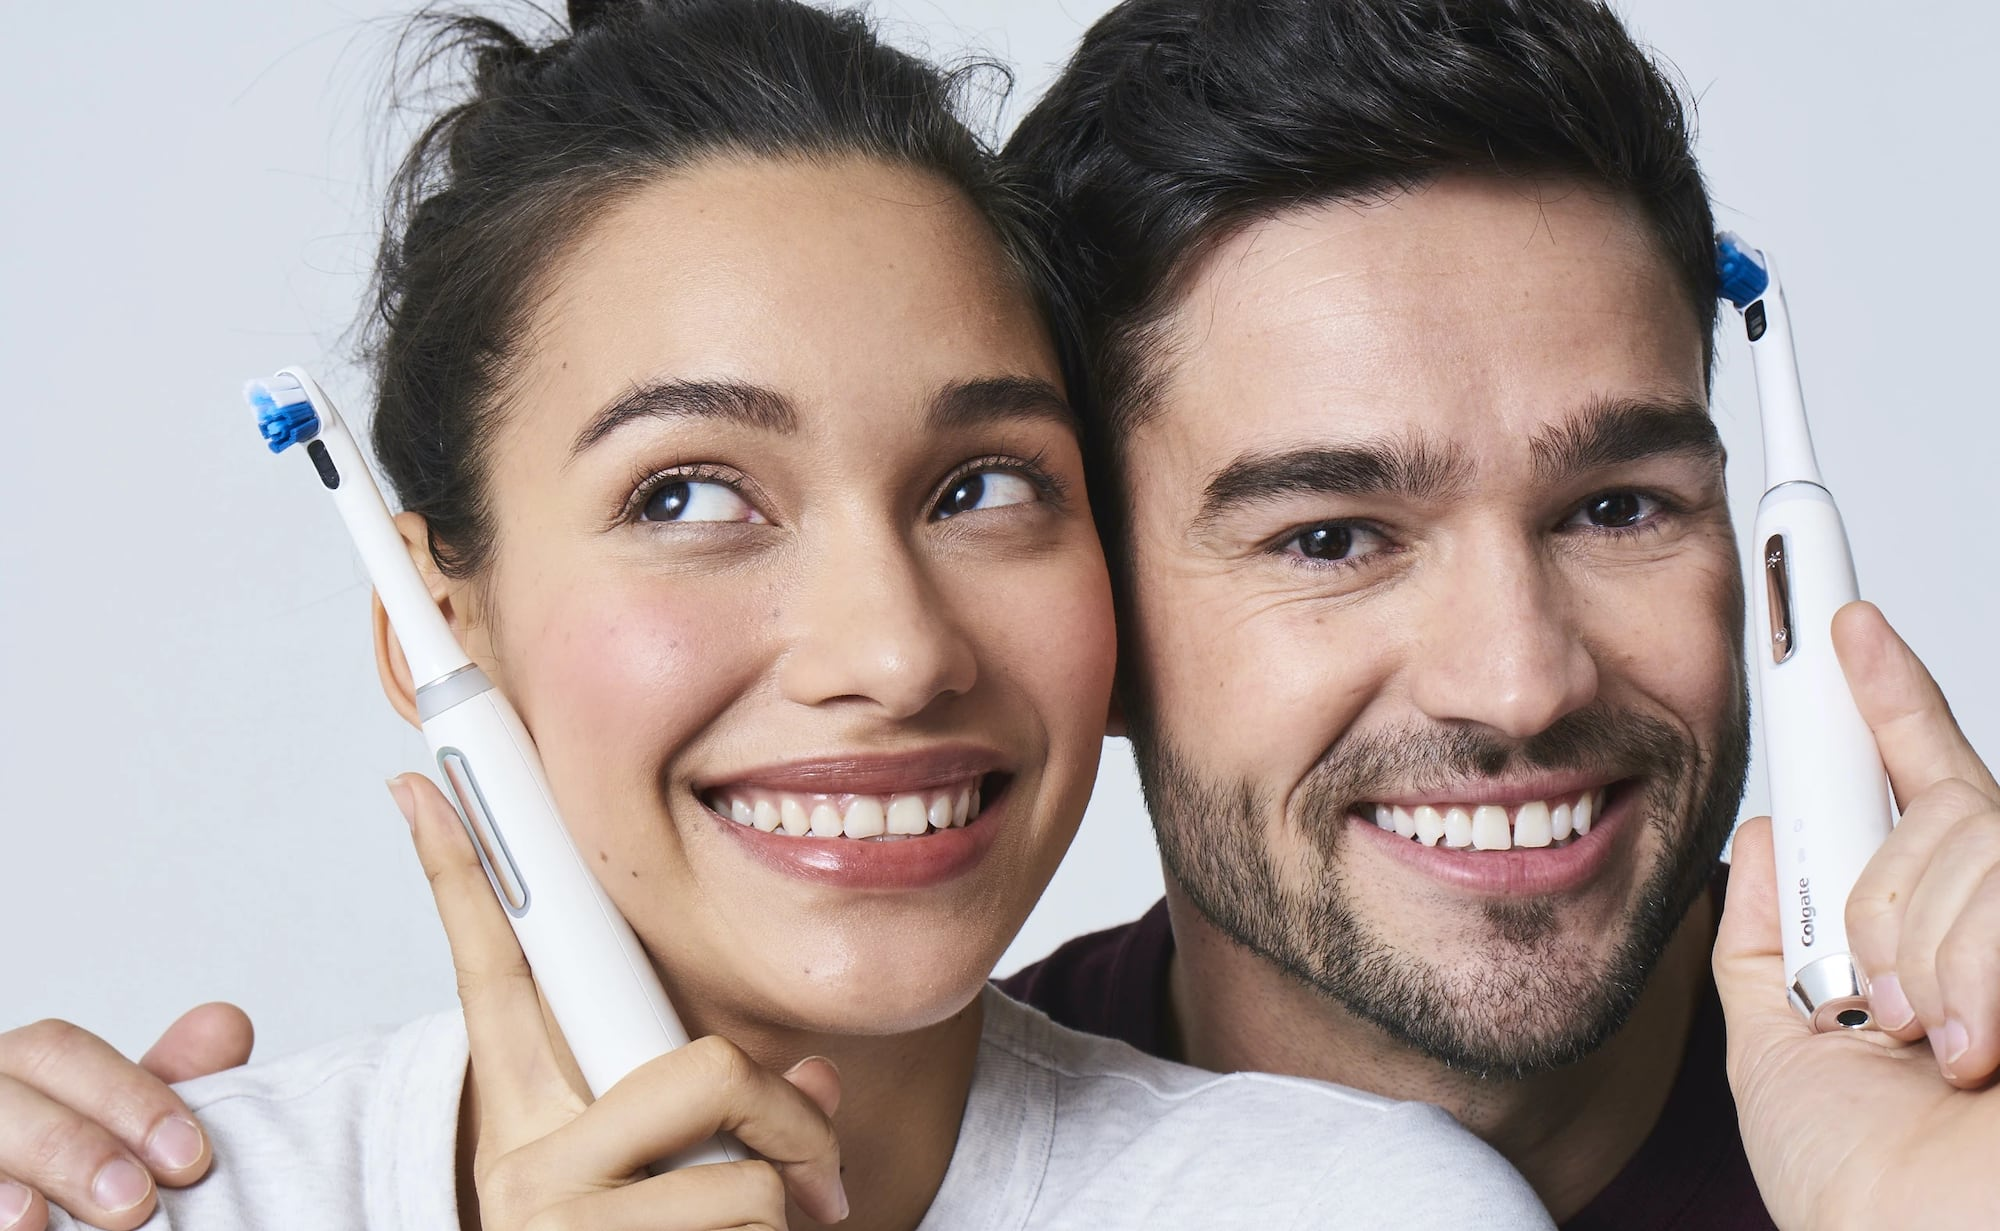 Colgate Plaqless Pro Smart Electric Toothbrush detects and removes buildup while you brush